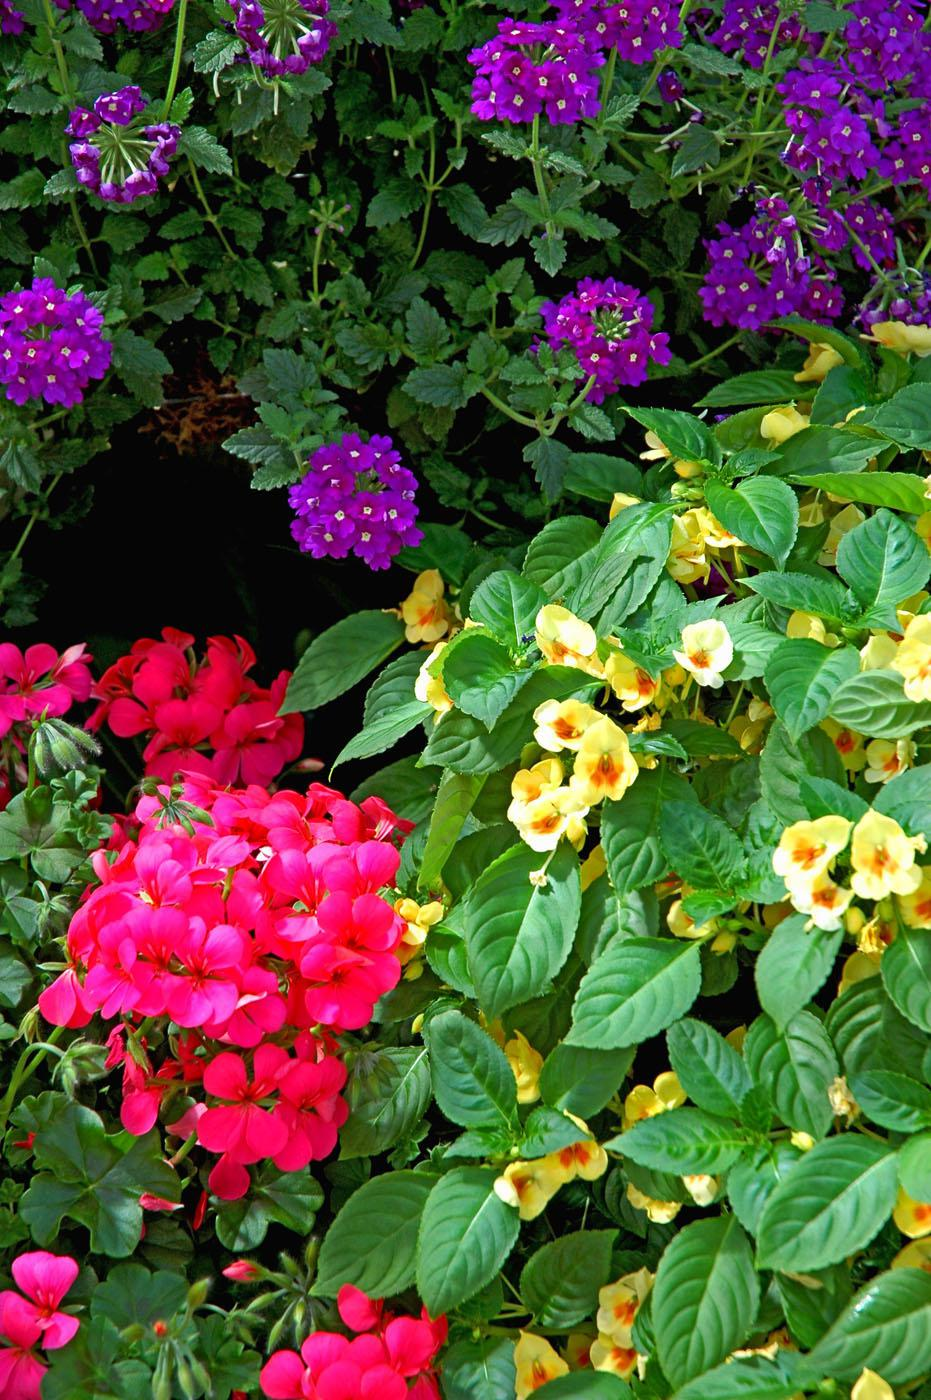 Fusion Glow impatiens have blossoms that are yellow with an orange and yellow bi-colored center. They look beautiful here with Aztec Violet verbena and Galleria Deep Rose geranium.